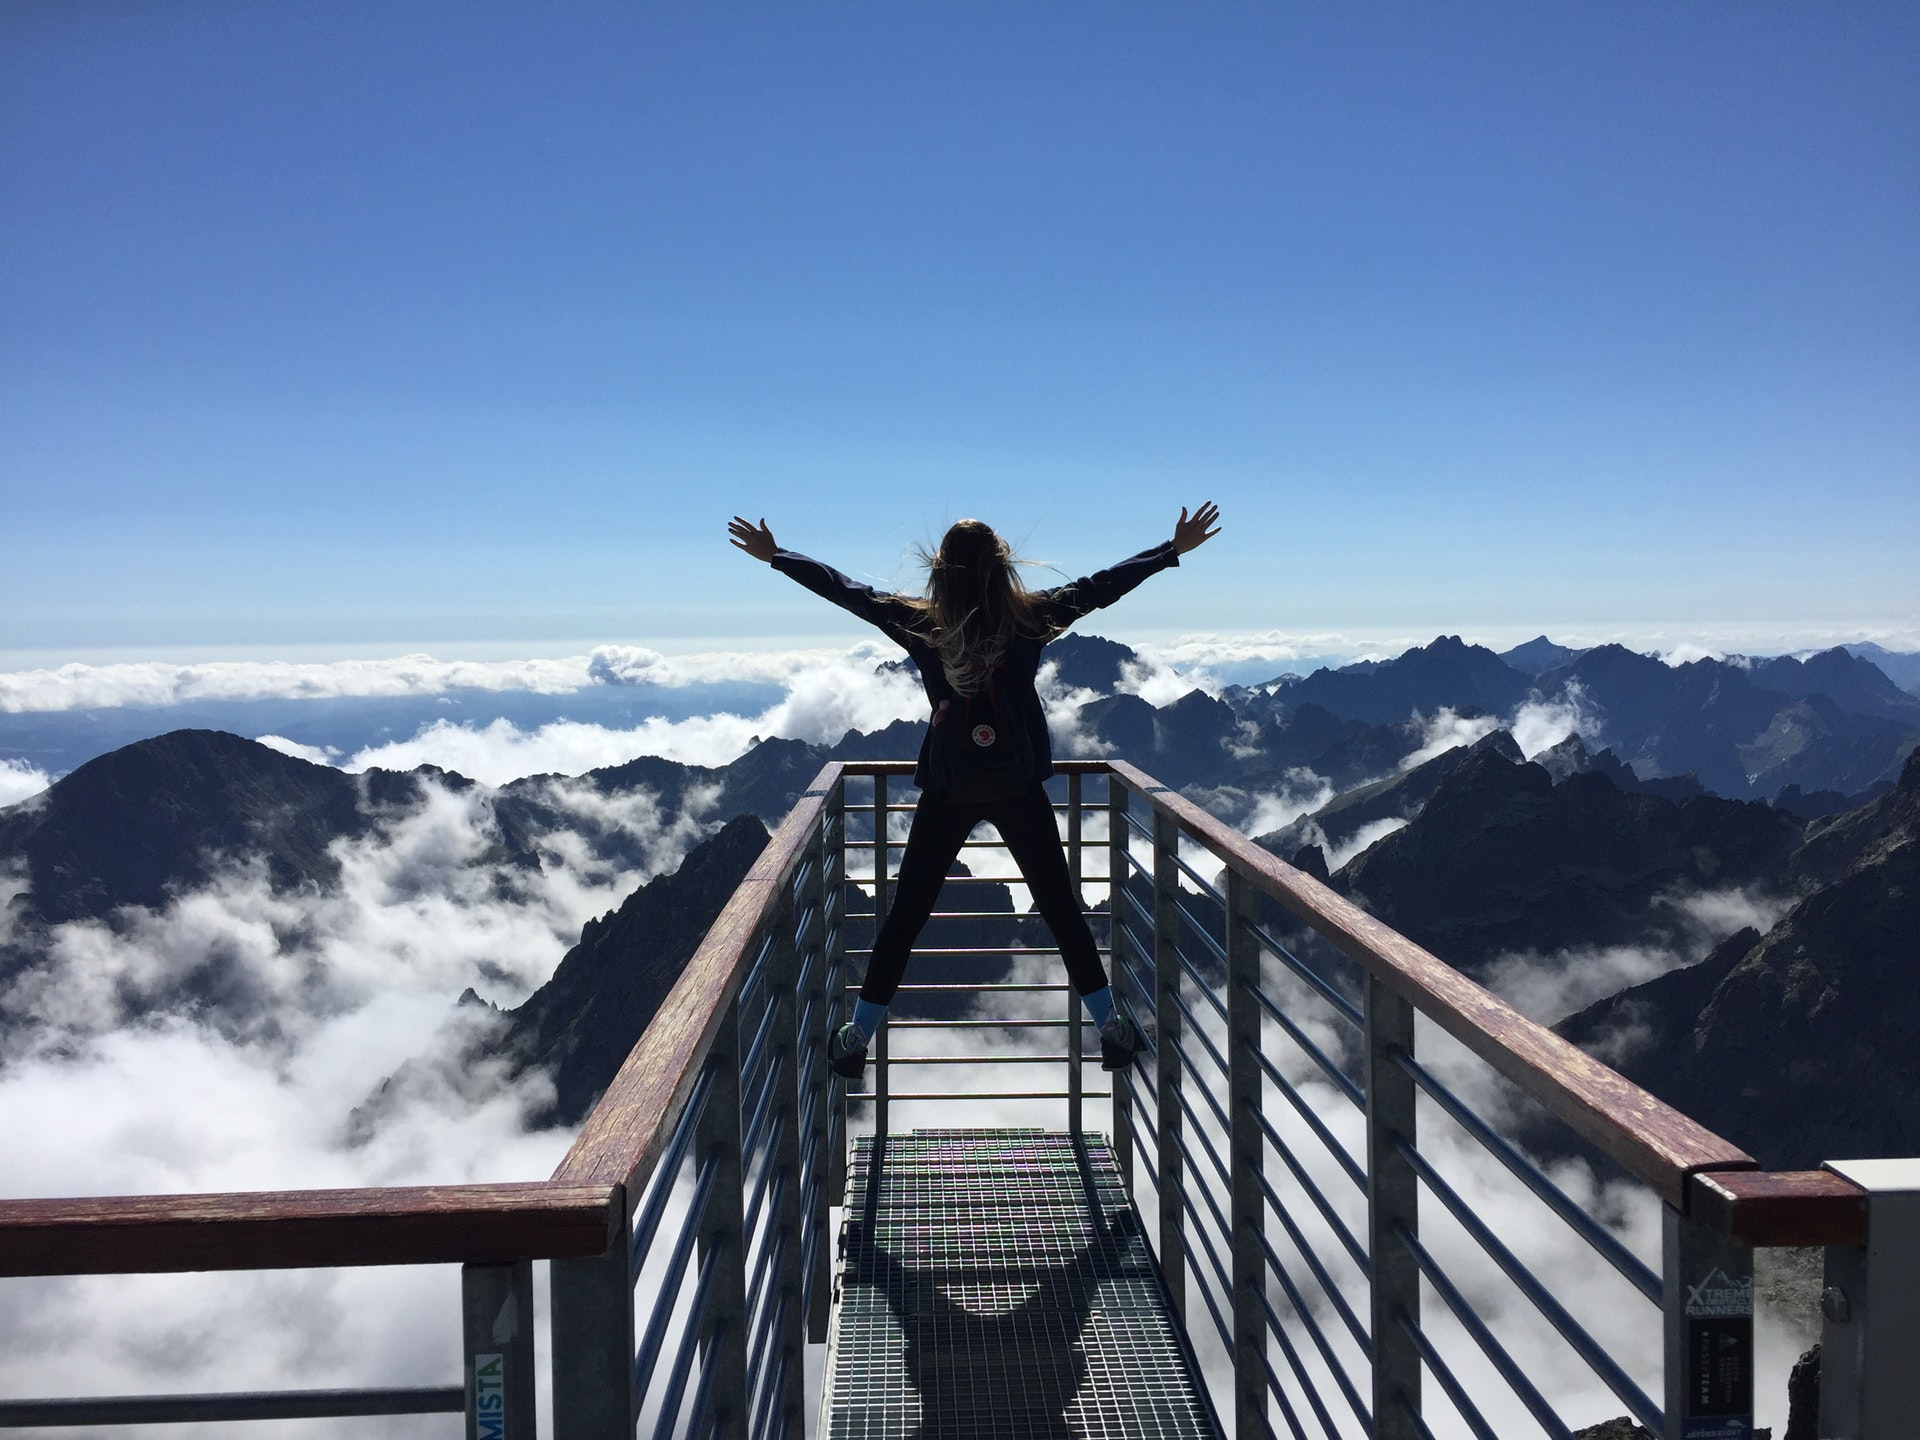 Are You Making The Most of Life? How to Step Out of Your Comfort Zone!